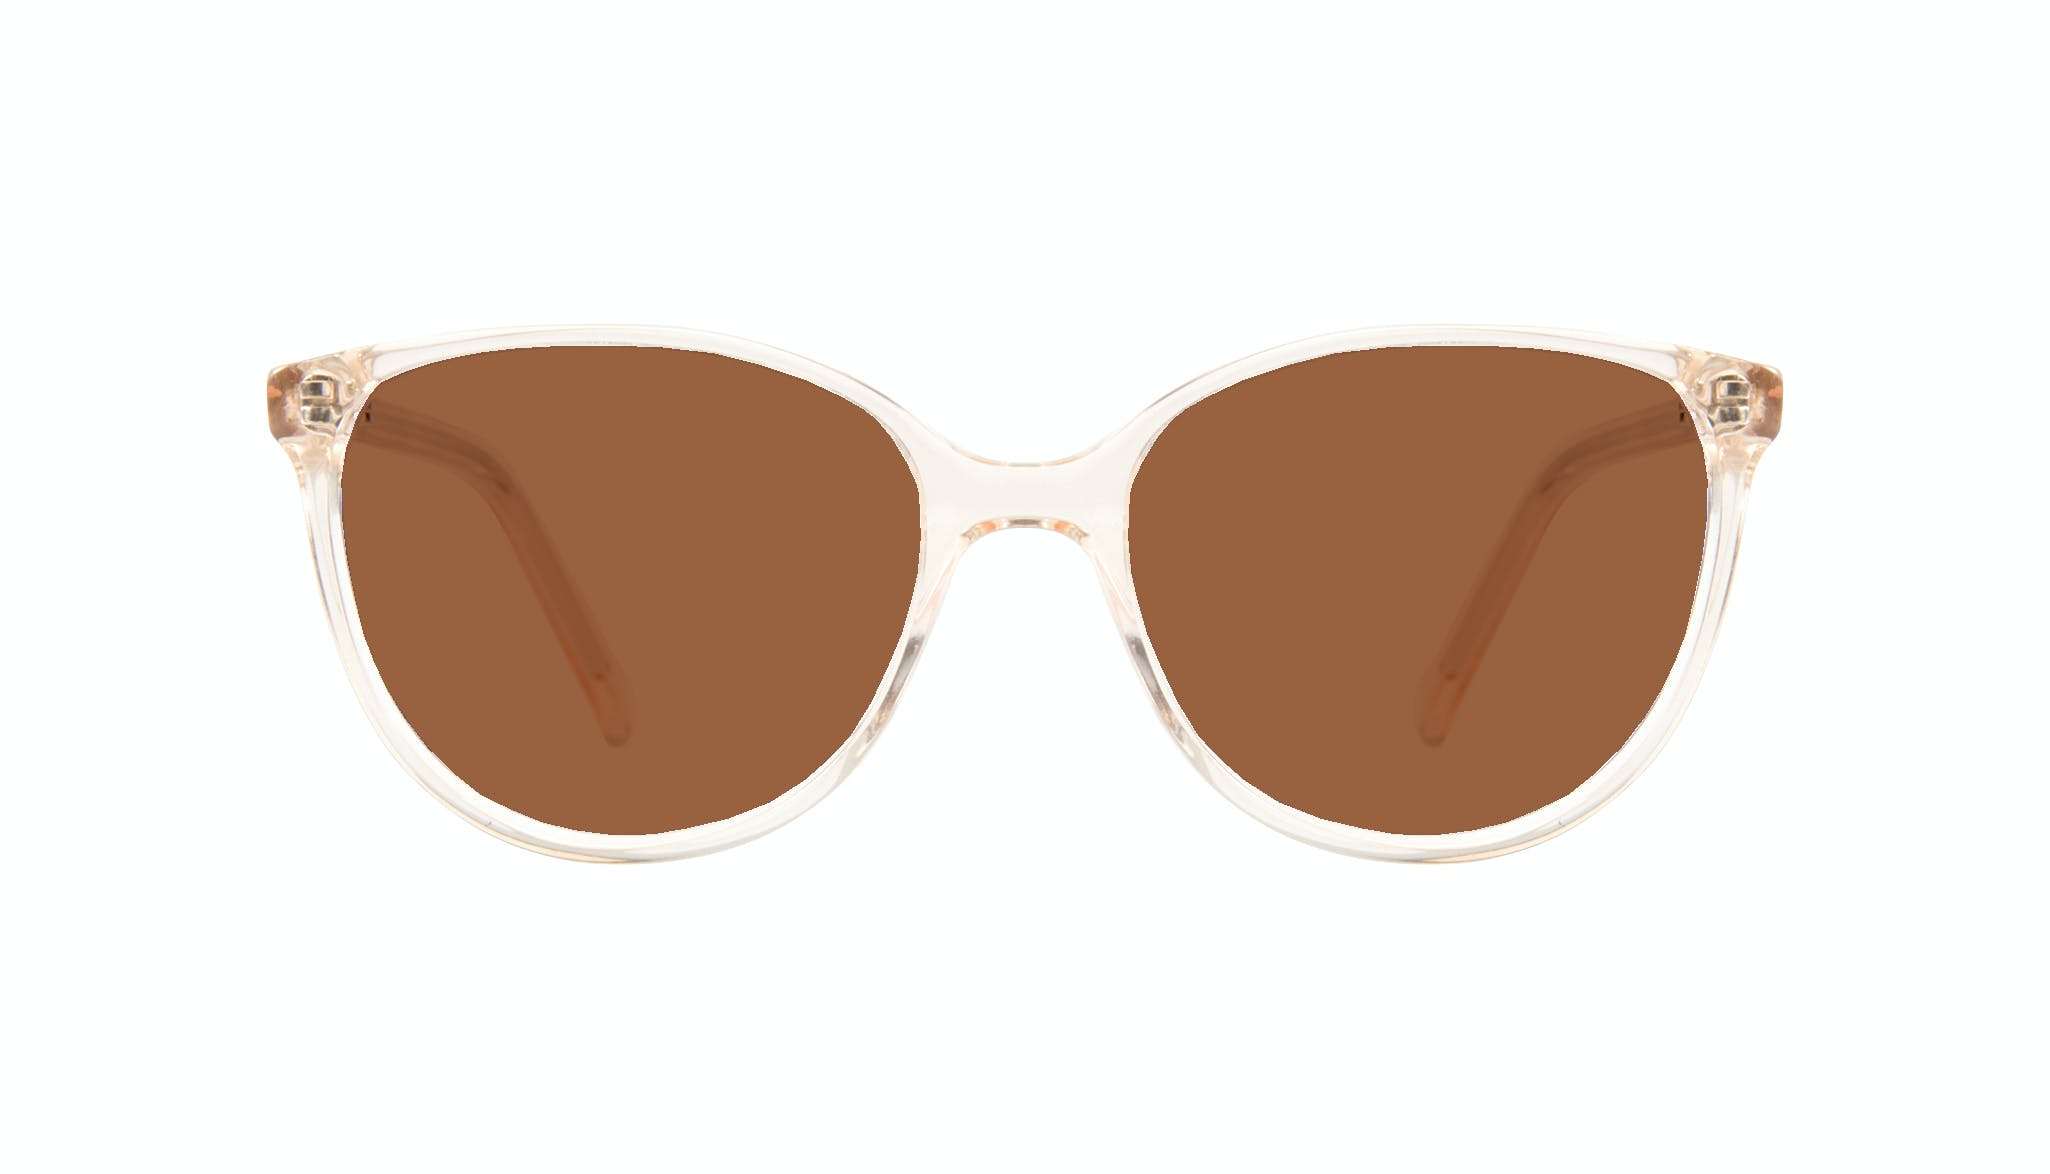 Affordable Fashion Glasses Round Sunglasses Women Imagine Petite Blond Front